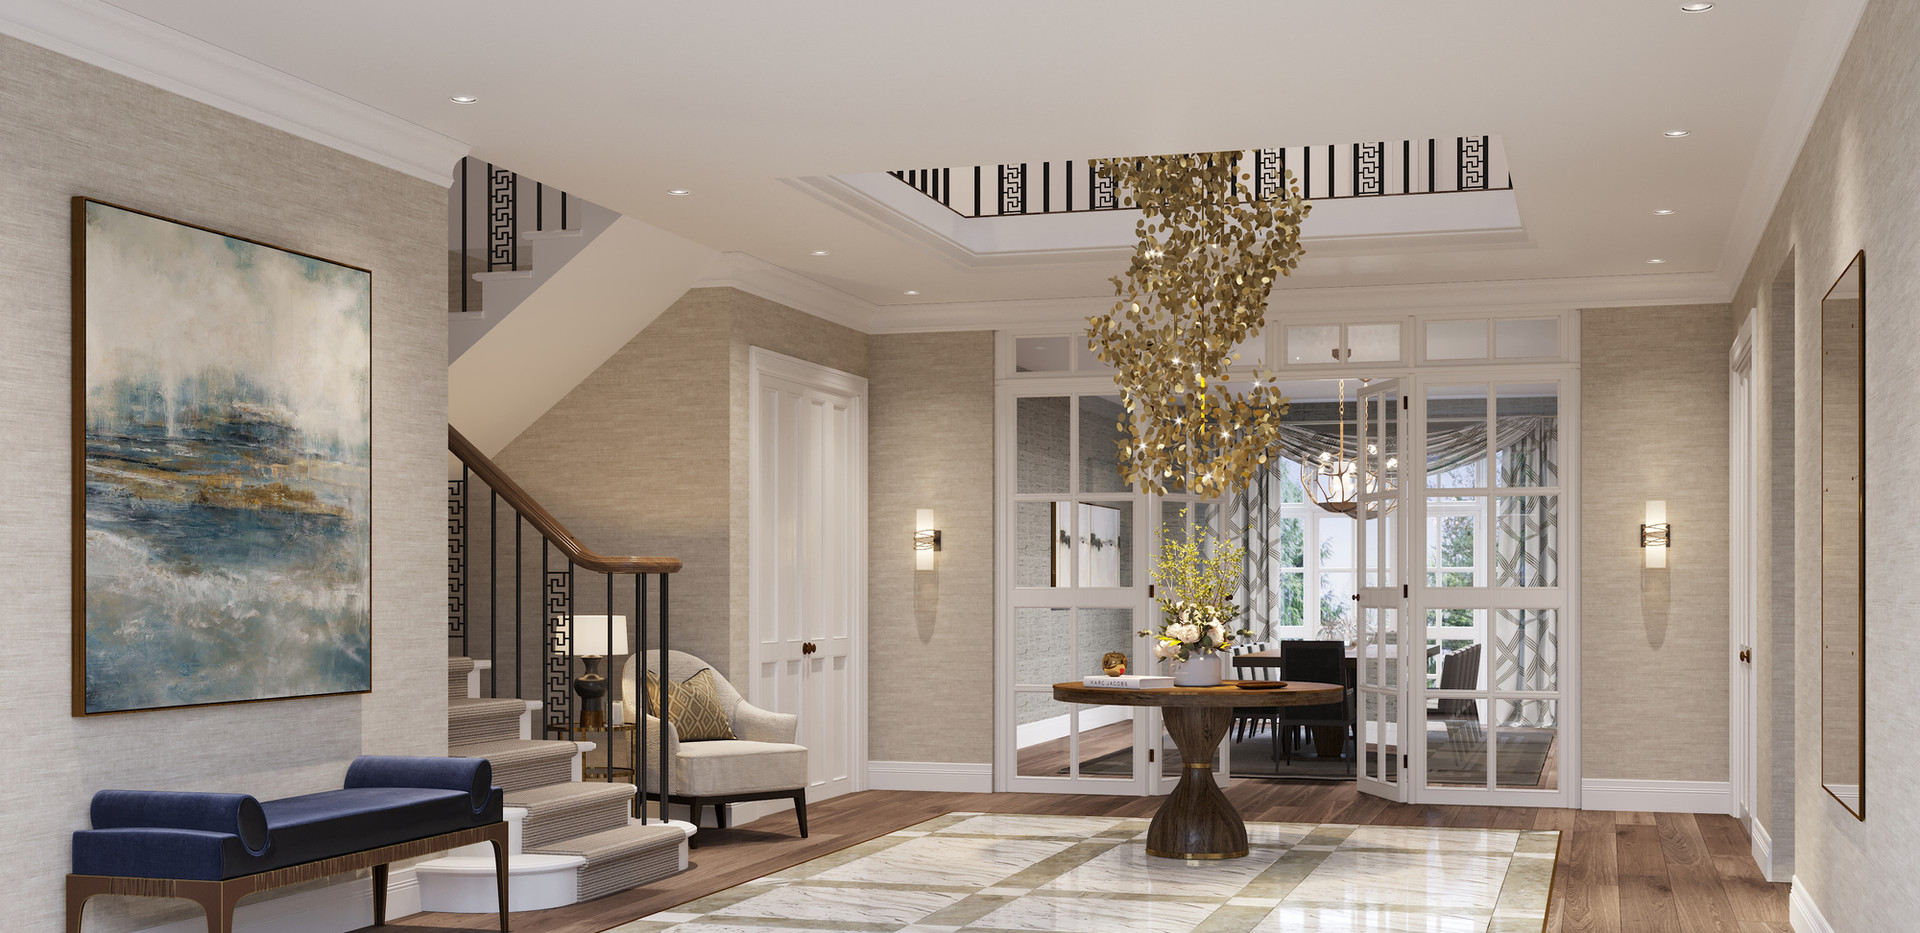 Entrance Hall _ Sunningdale Development